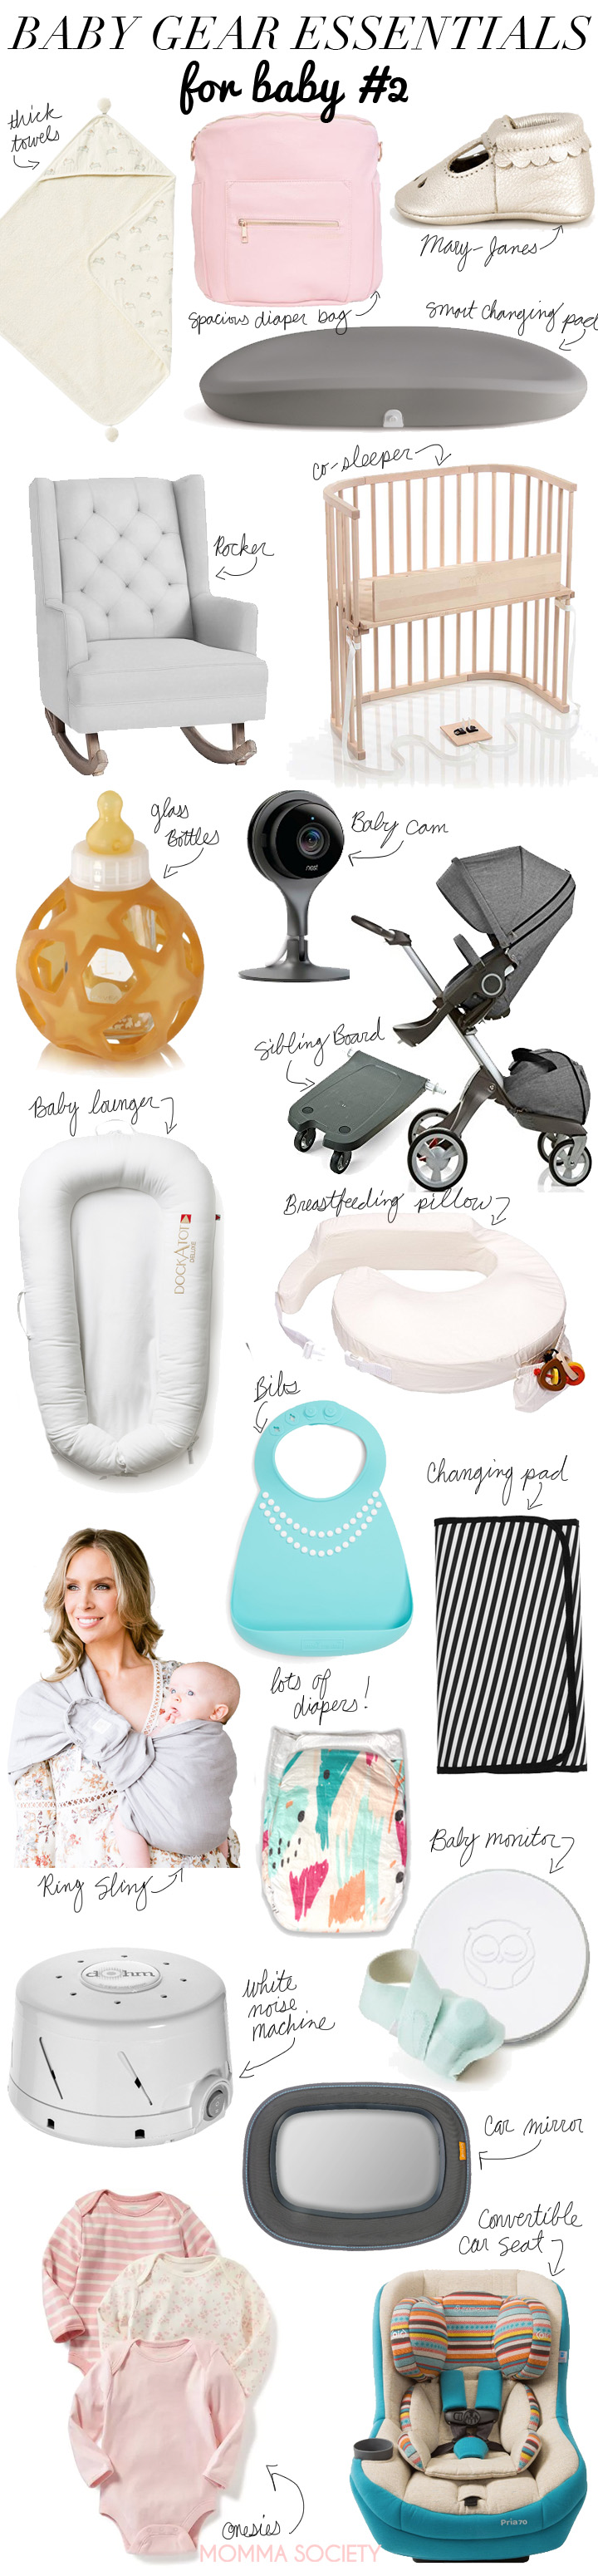 20 Baby Gear Must-Have's For Baby #2 | Baby Essentials | Registry | Baby Registry | Best Baby Gear | Baby Must Haves